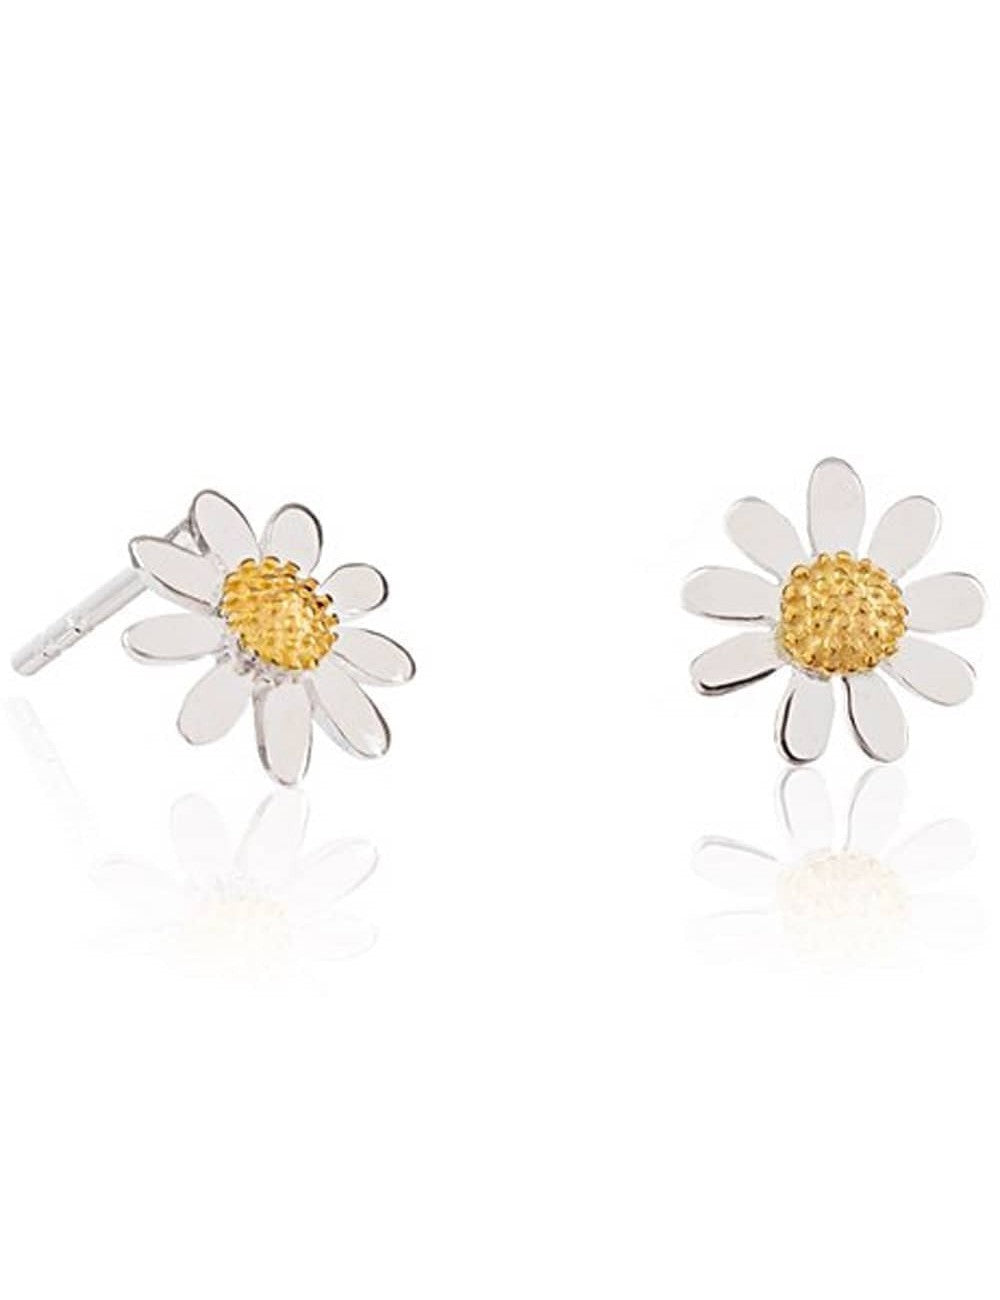 Daisy Marguerite Daisy Stud Earrings